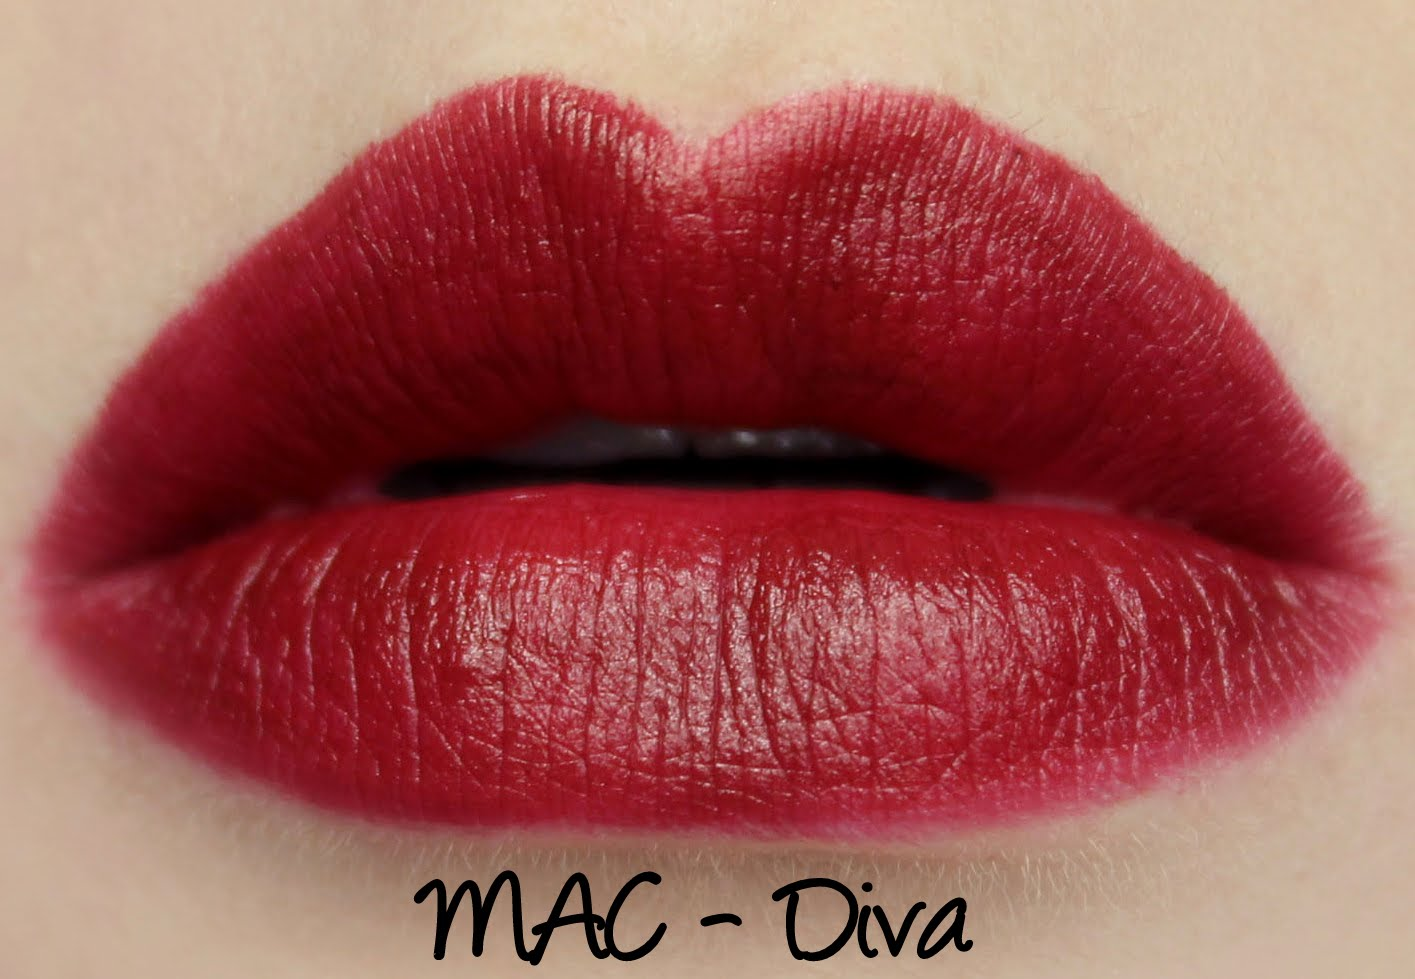 MAC Diva lipstick swatches & review